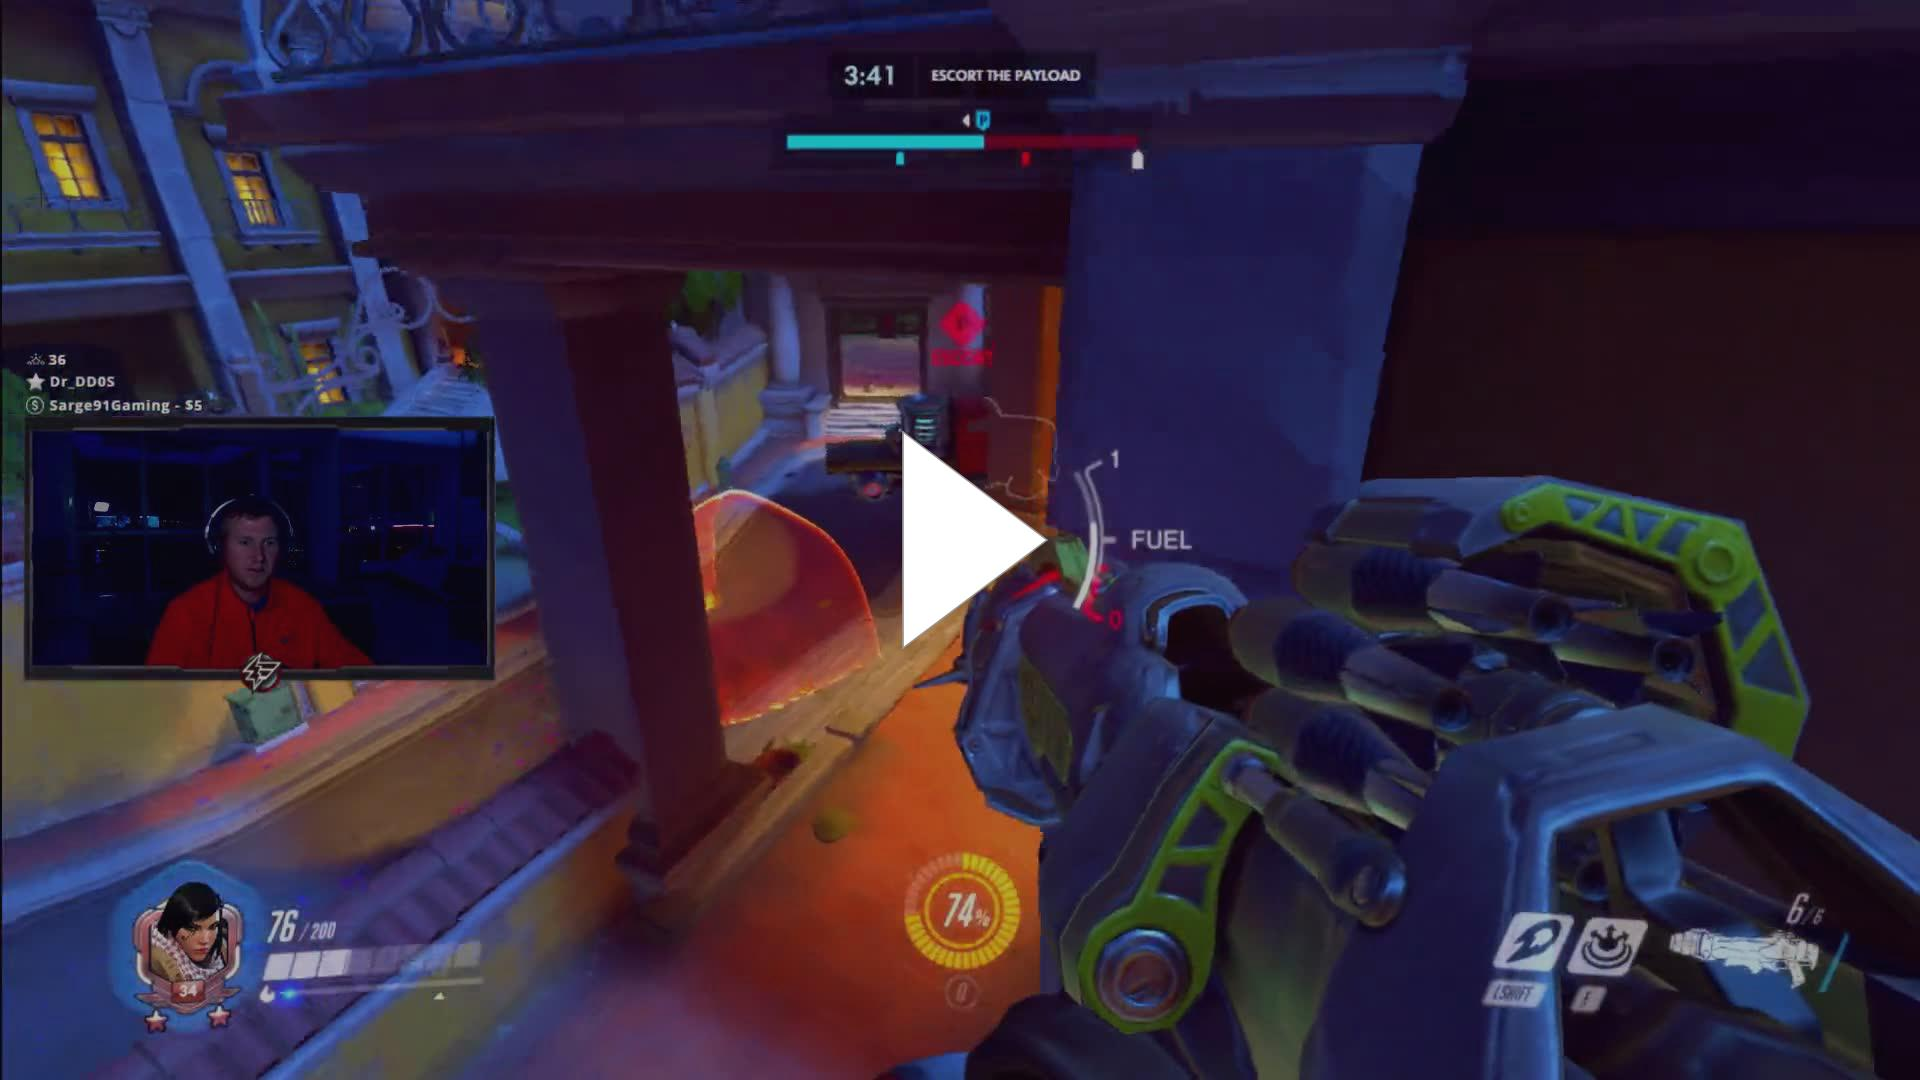 FATAL1TY - POTG as Pharah quake style - Twitch